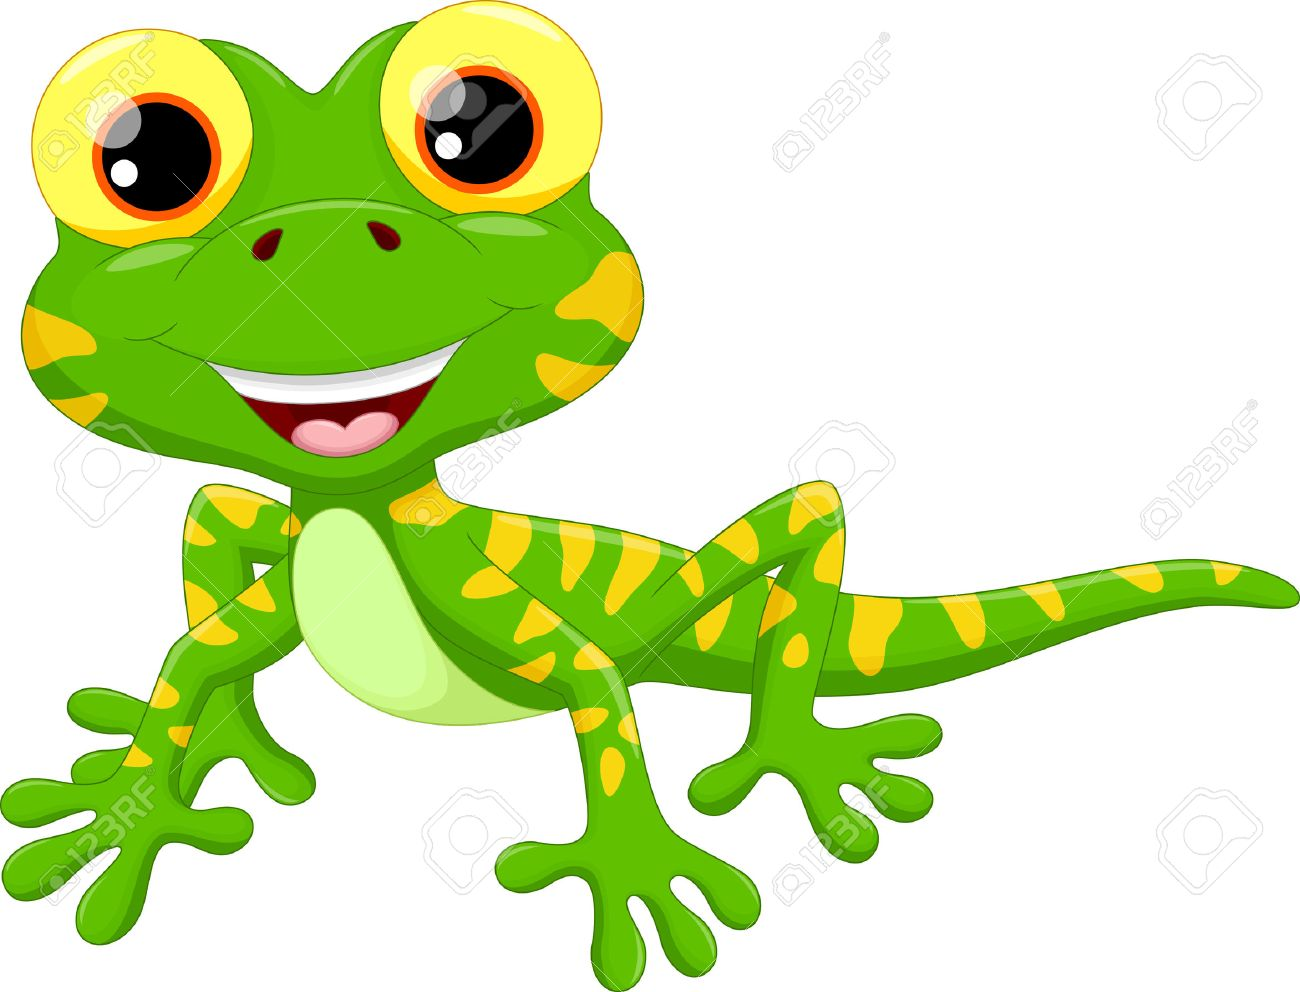 26,679 Gecko Stock Vector Illustration And Royalty Free Gecko Clipart for Cute Lizard Clipart  113lpg